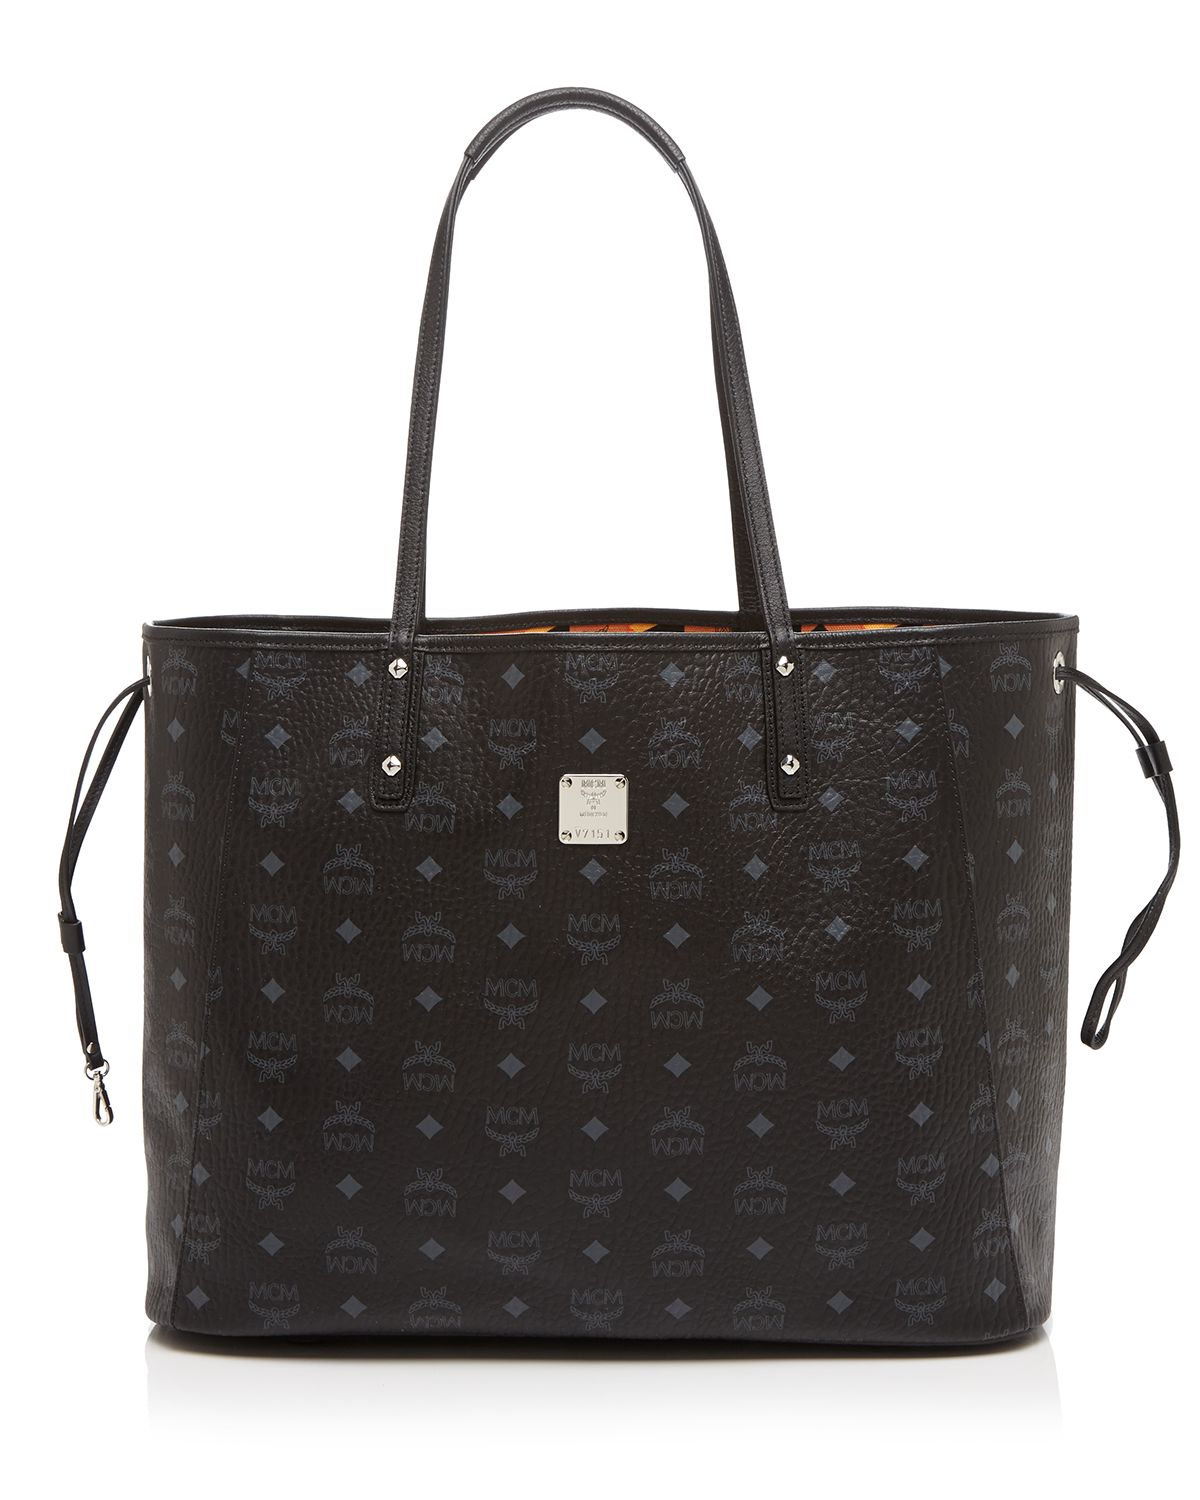 mcm shopper project visetos reversible large tote in black lyst. Black Bedroom Furniture Sets. Home Design Ideas